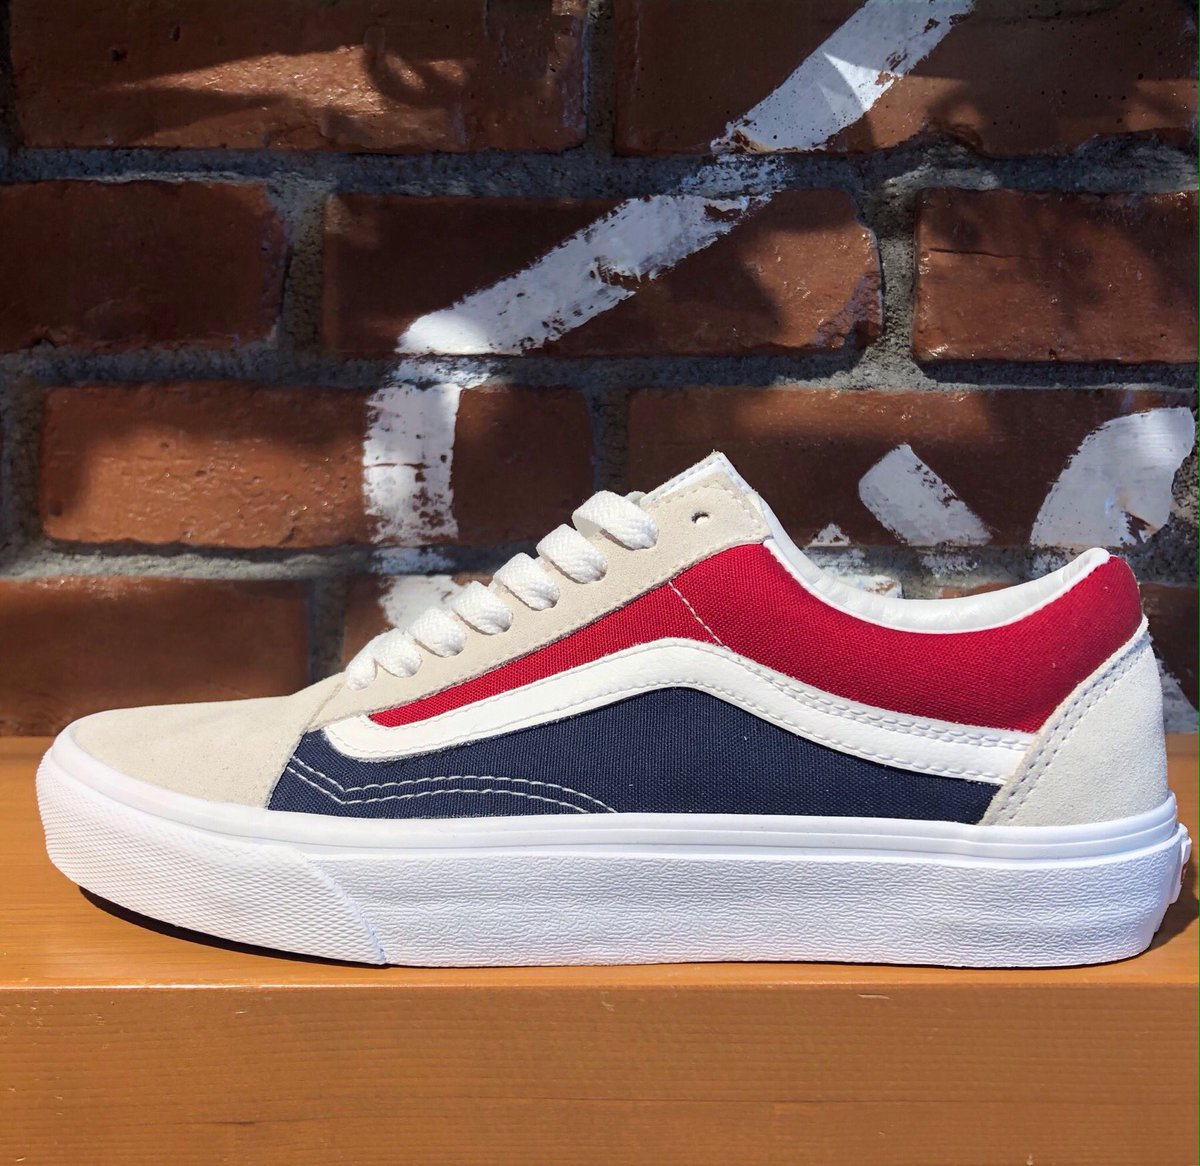 915c91a0be08b0 VANS JAPAN STORES on Twitter